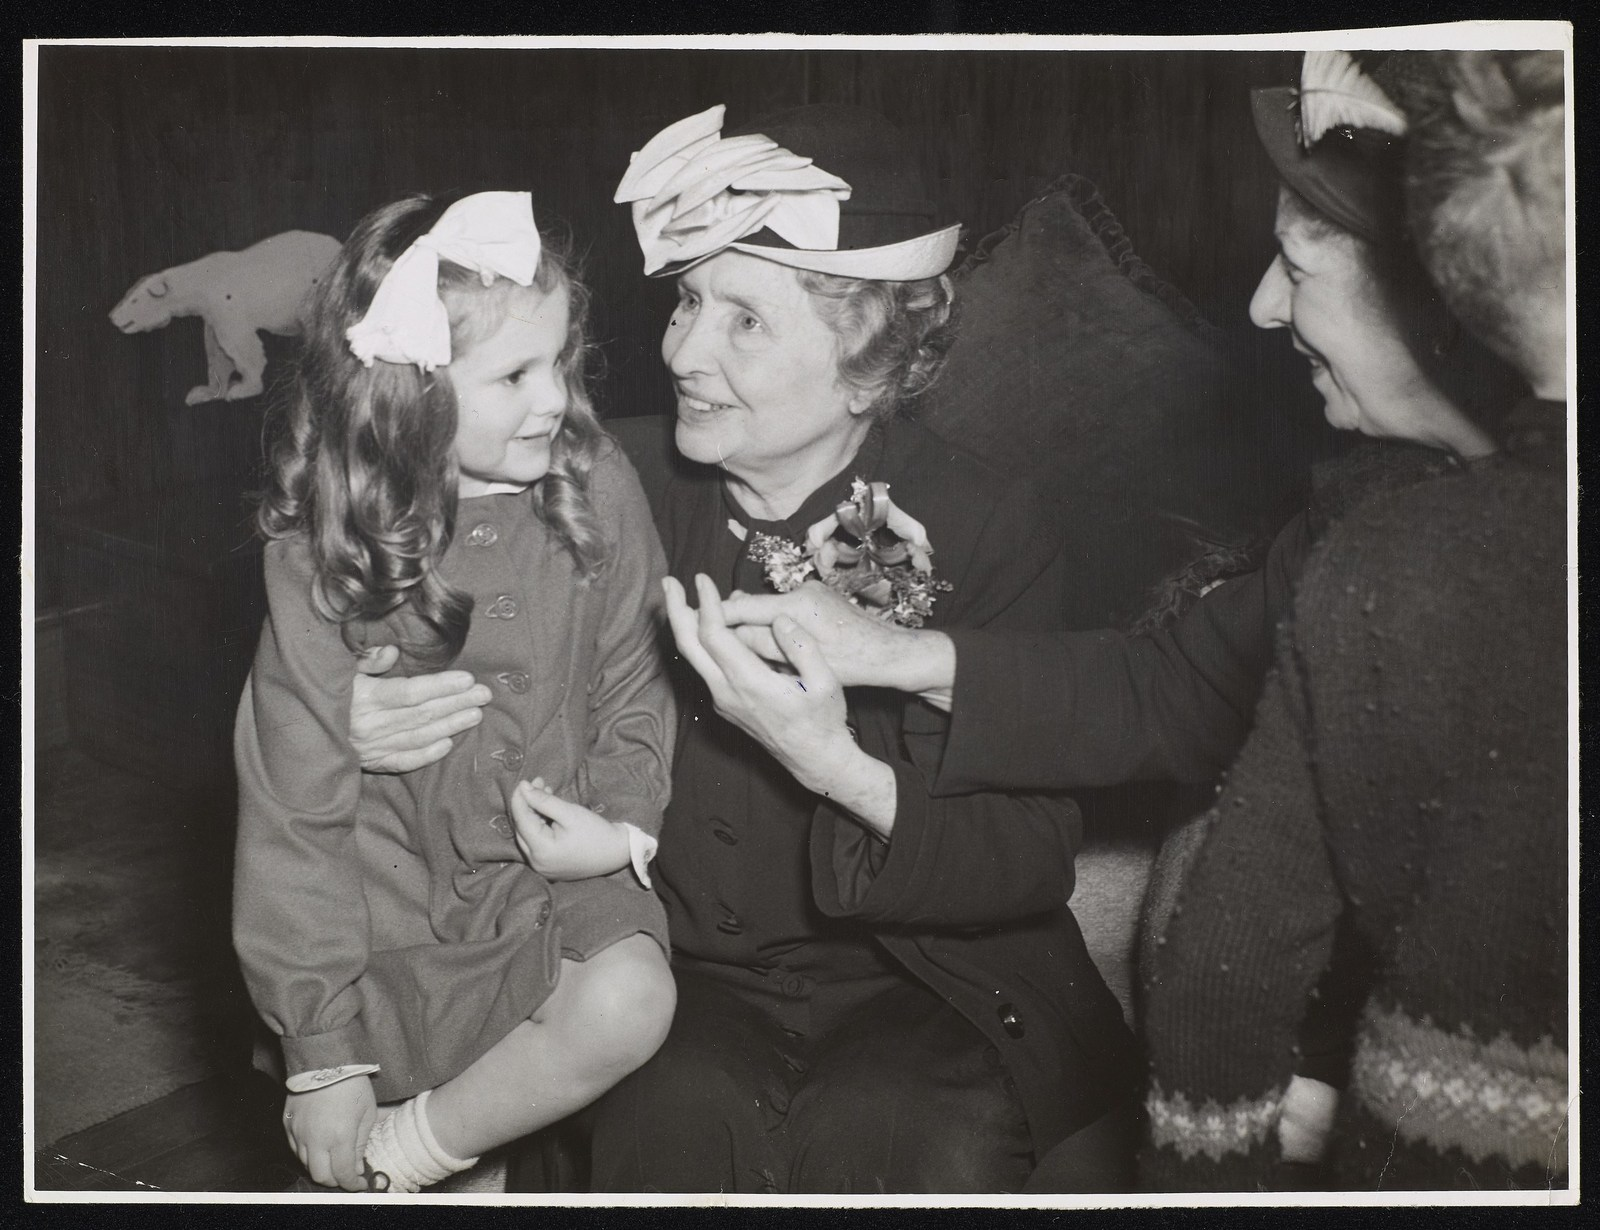 Girl smiling with bow in hair sitting next to Helen Keller who has her arm around her and is smiling